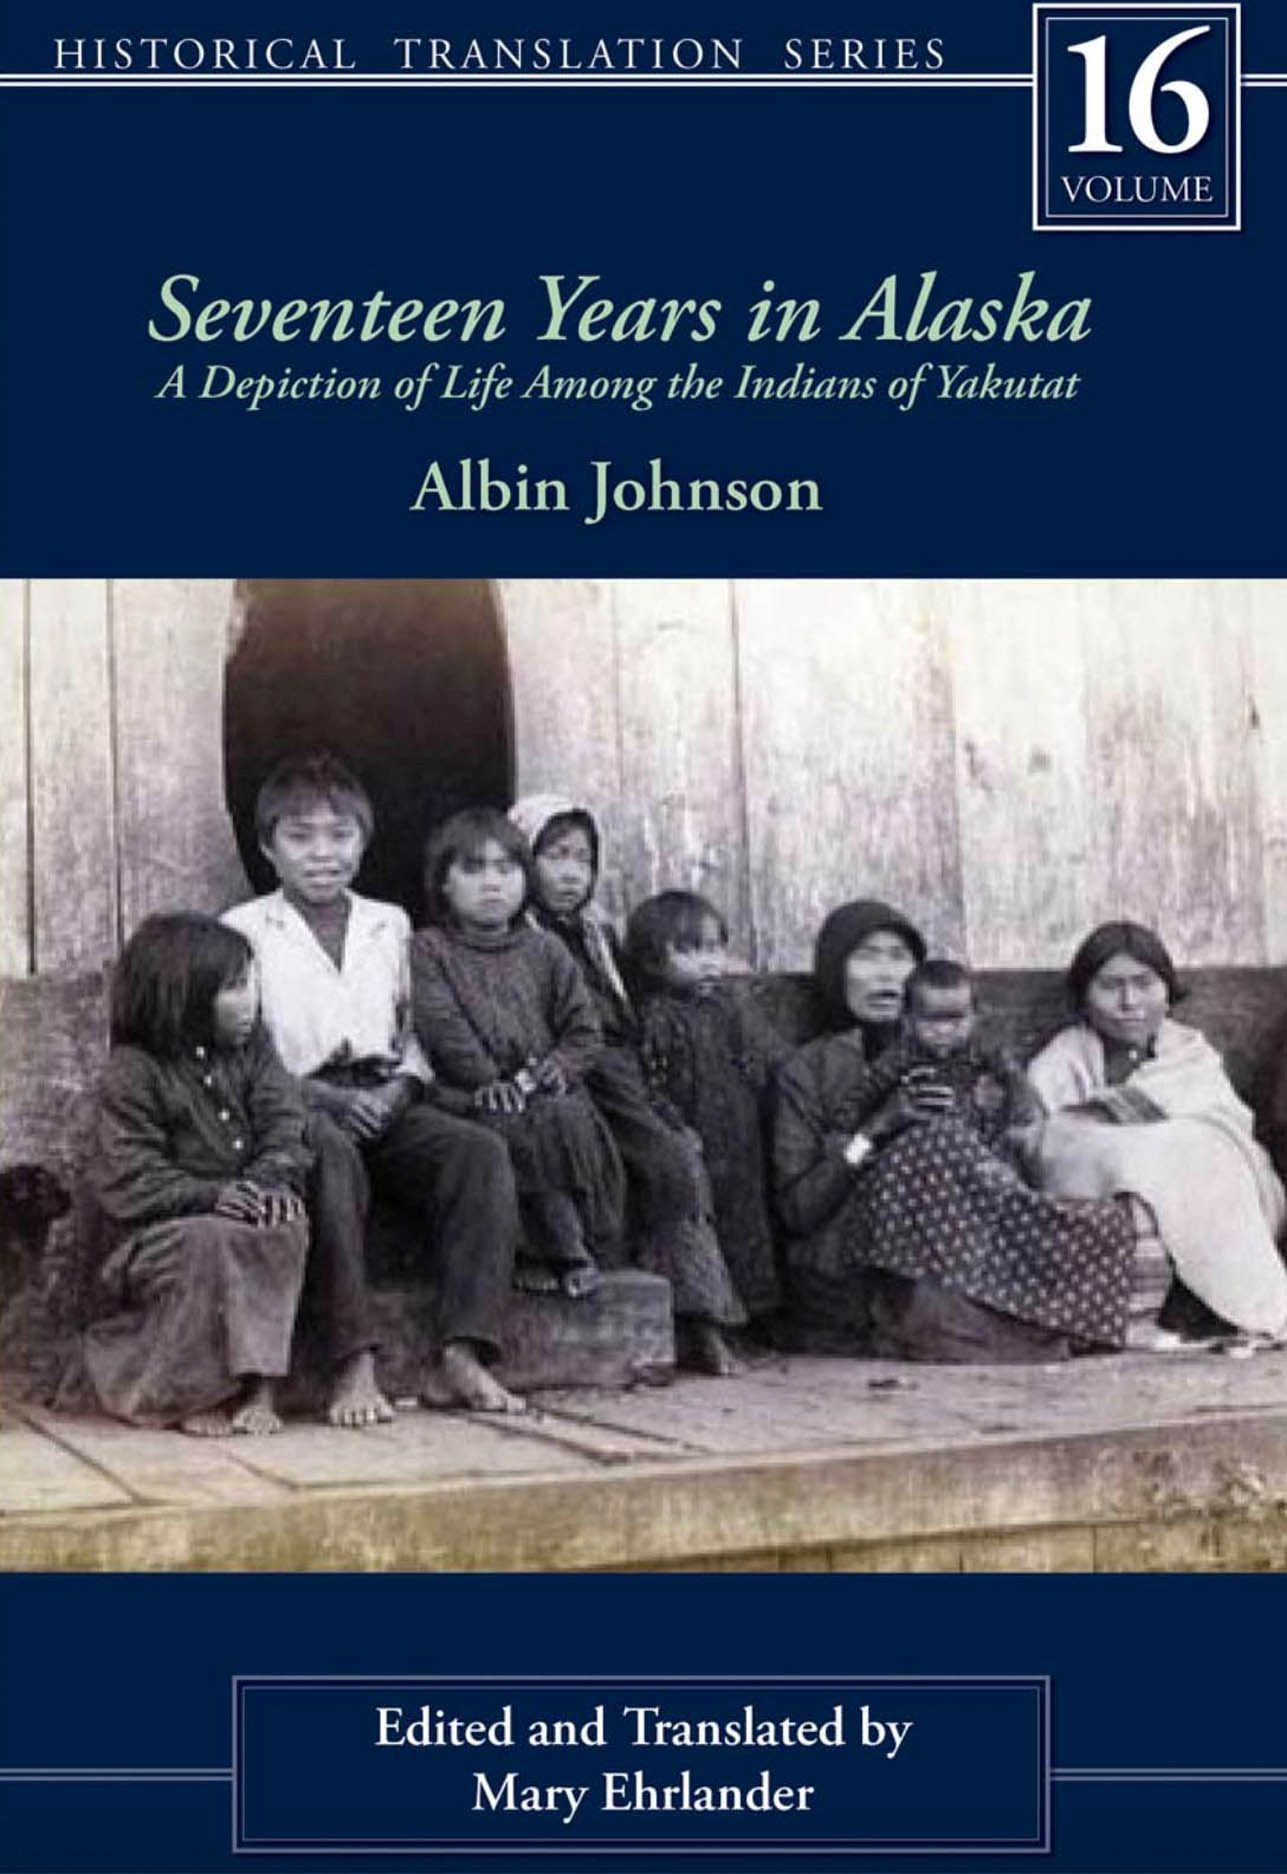 Seventeen Years in Alaska: A Depiction of Life Among the Indians of Yakutat